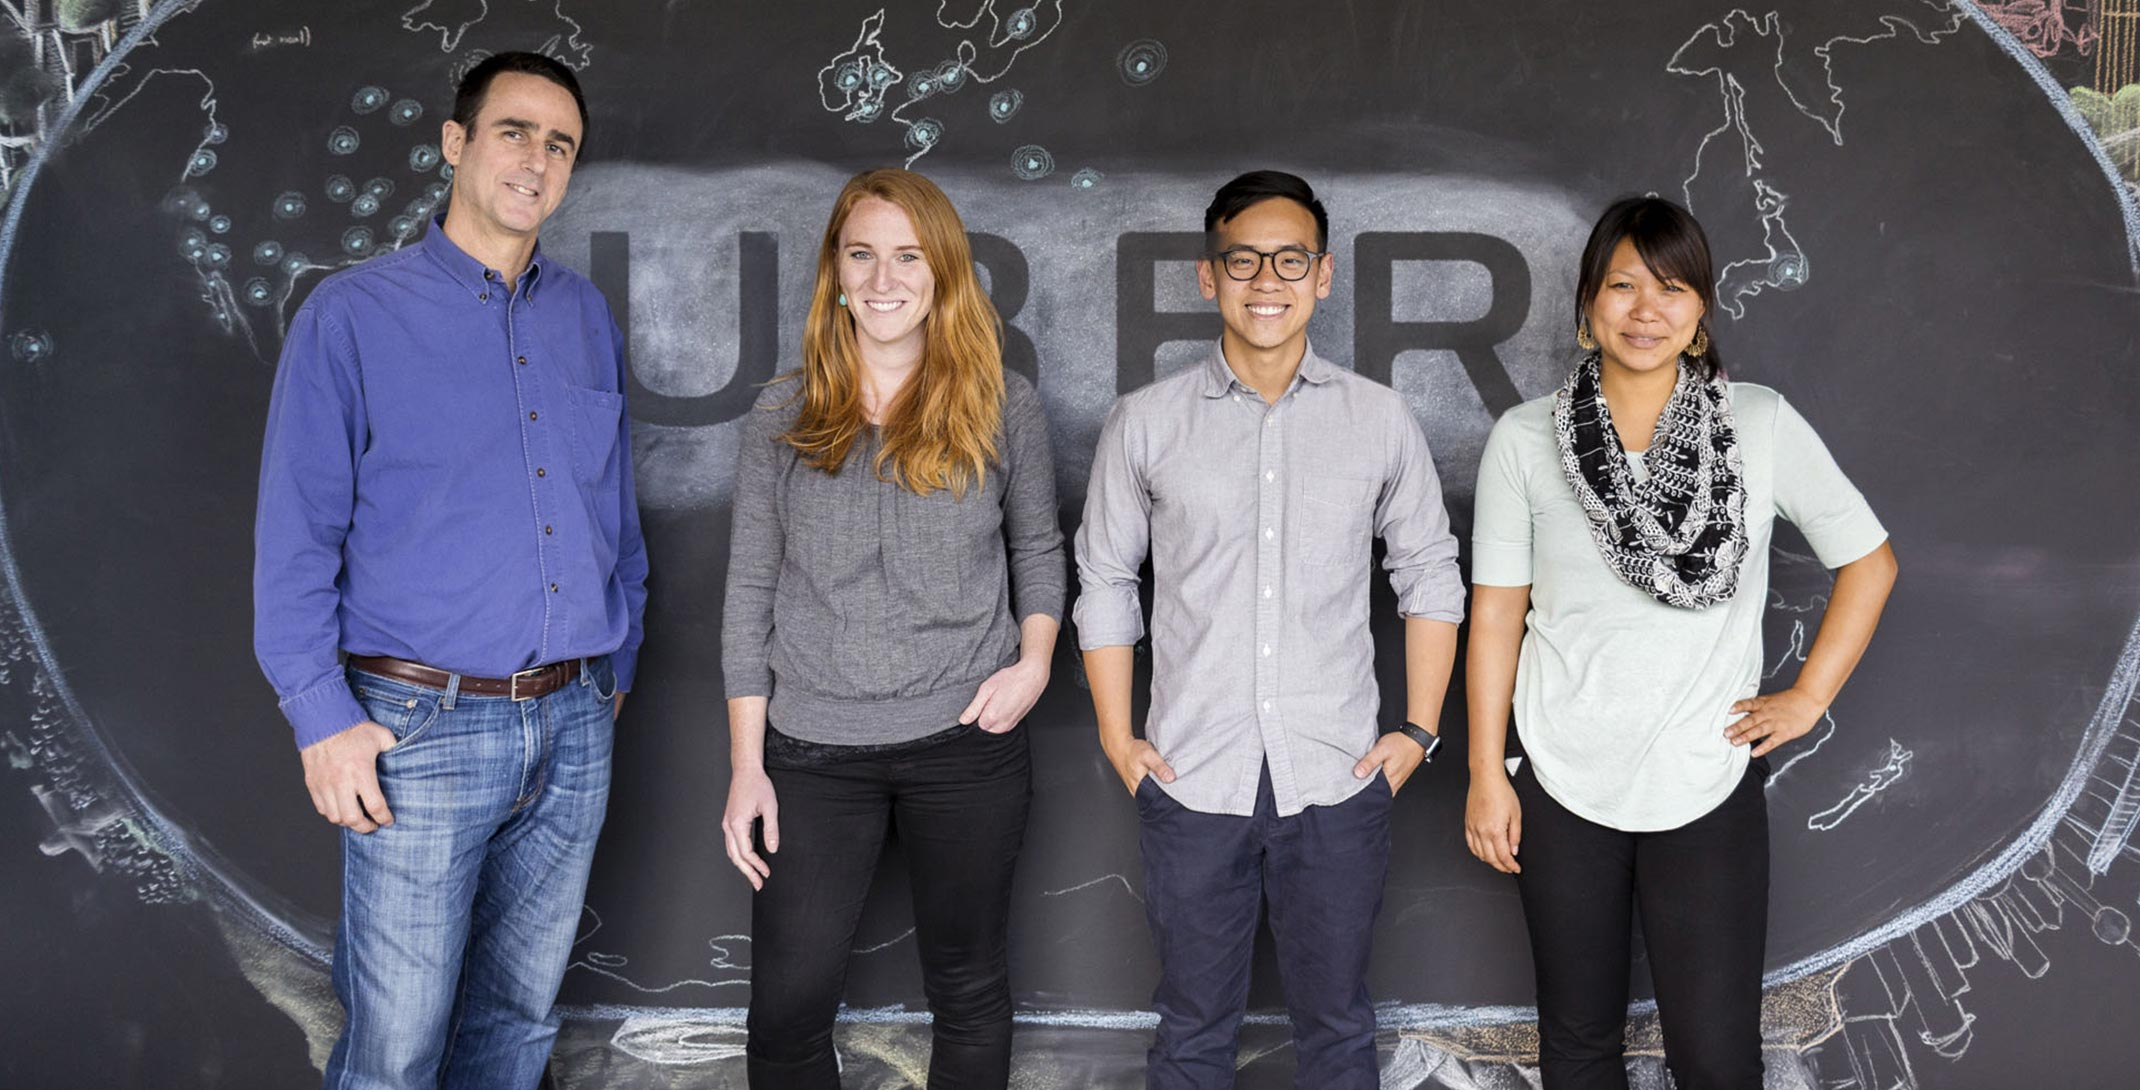 find your career uber four team members stand in front of a chalkboard wall a drawing of the